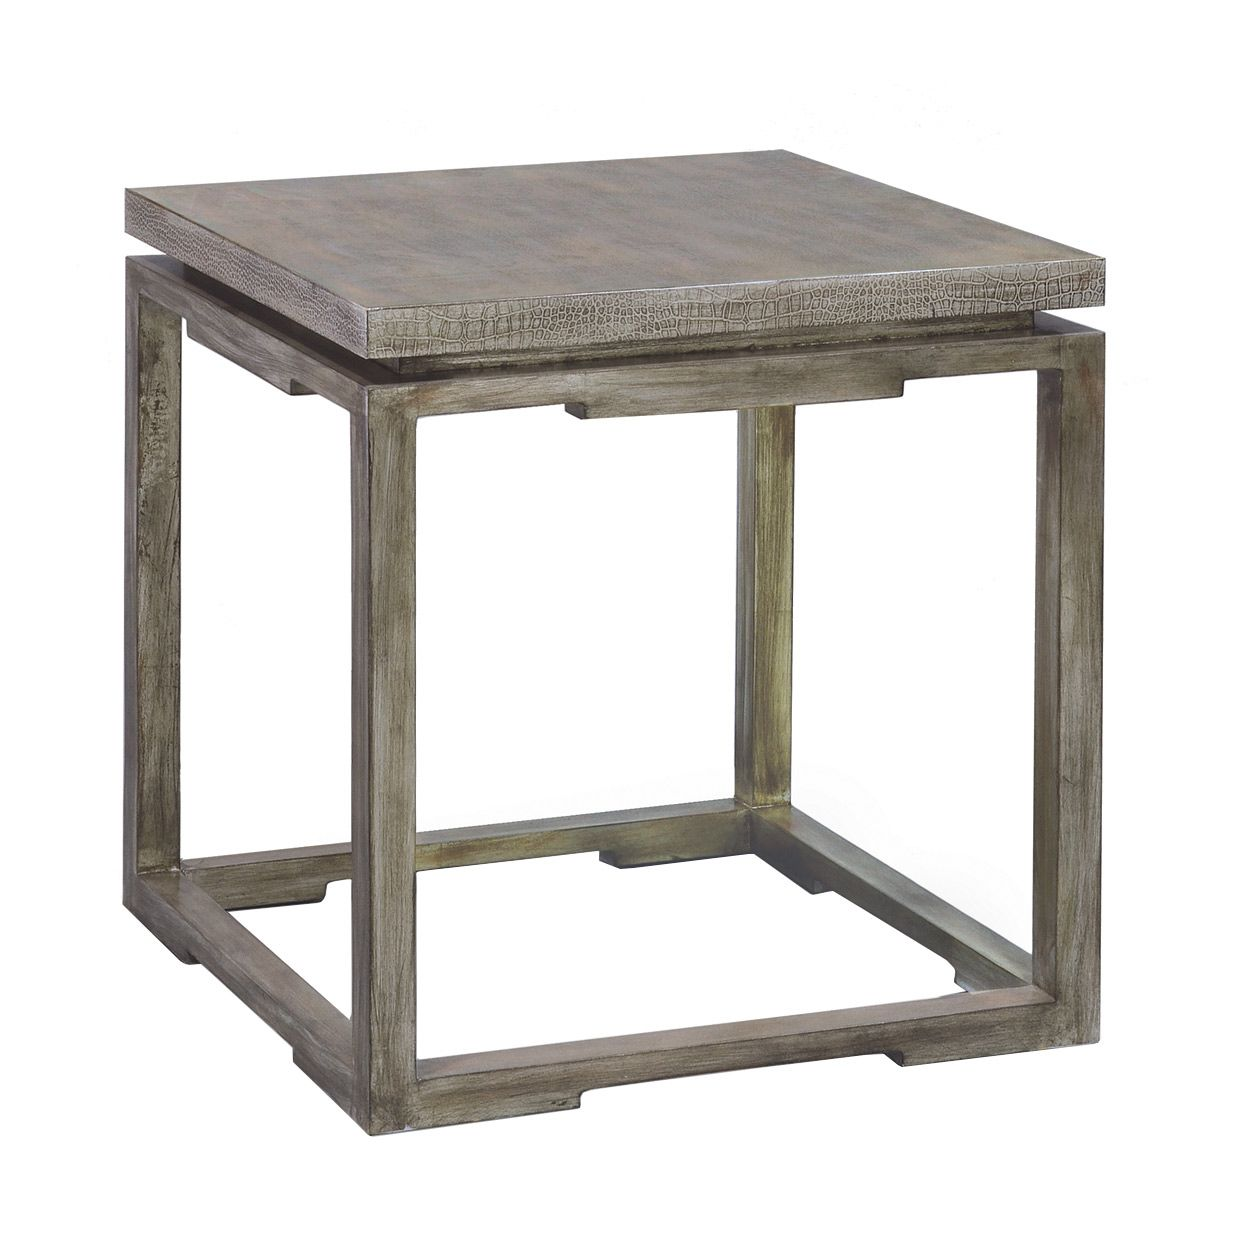 contemporary rustic modern furniture outdoor. The Palecek Regis Side Table Provides A Touch Of Rustic Glam. On An Antique-. Contemporary TablesModern Modern Furniture Outdoor